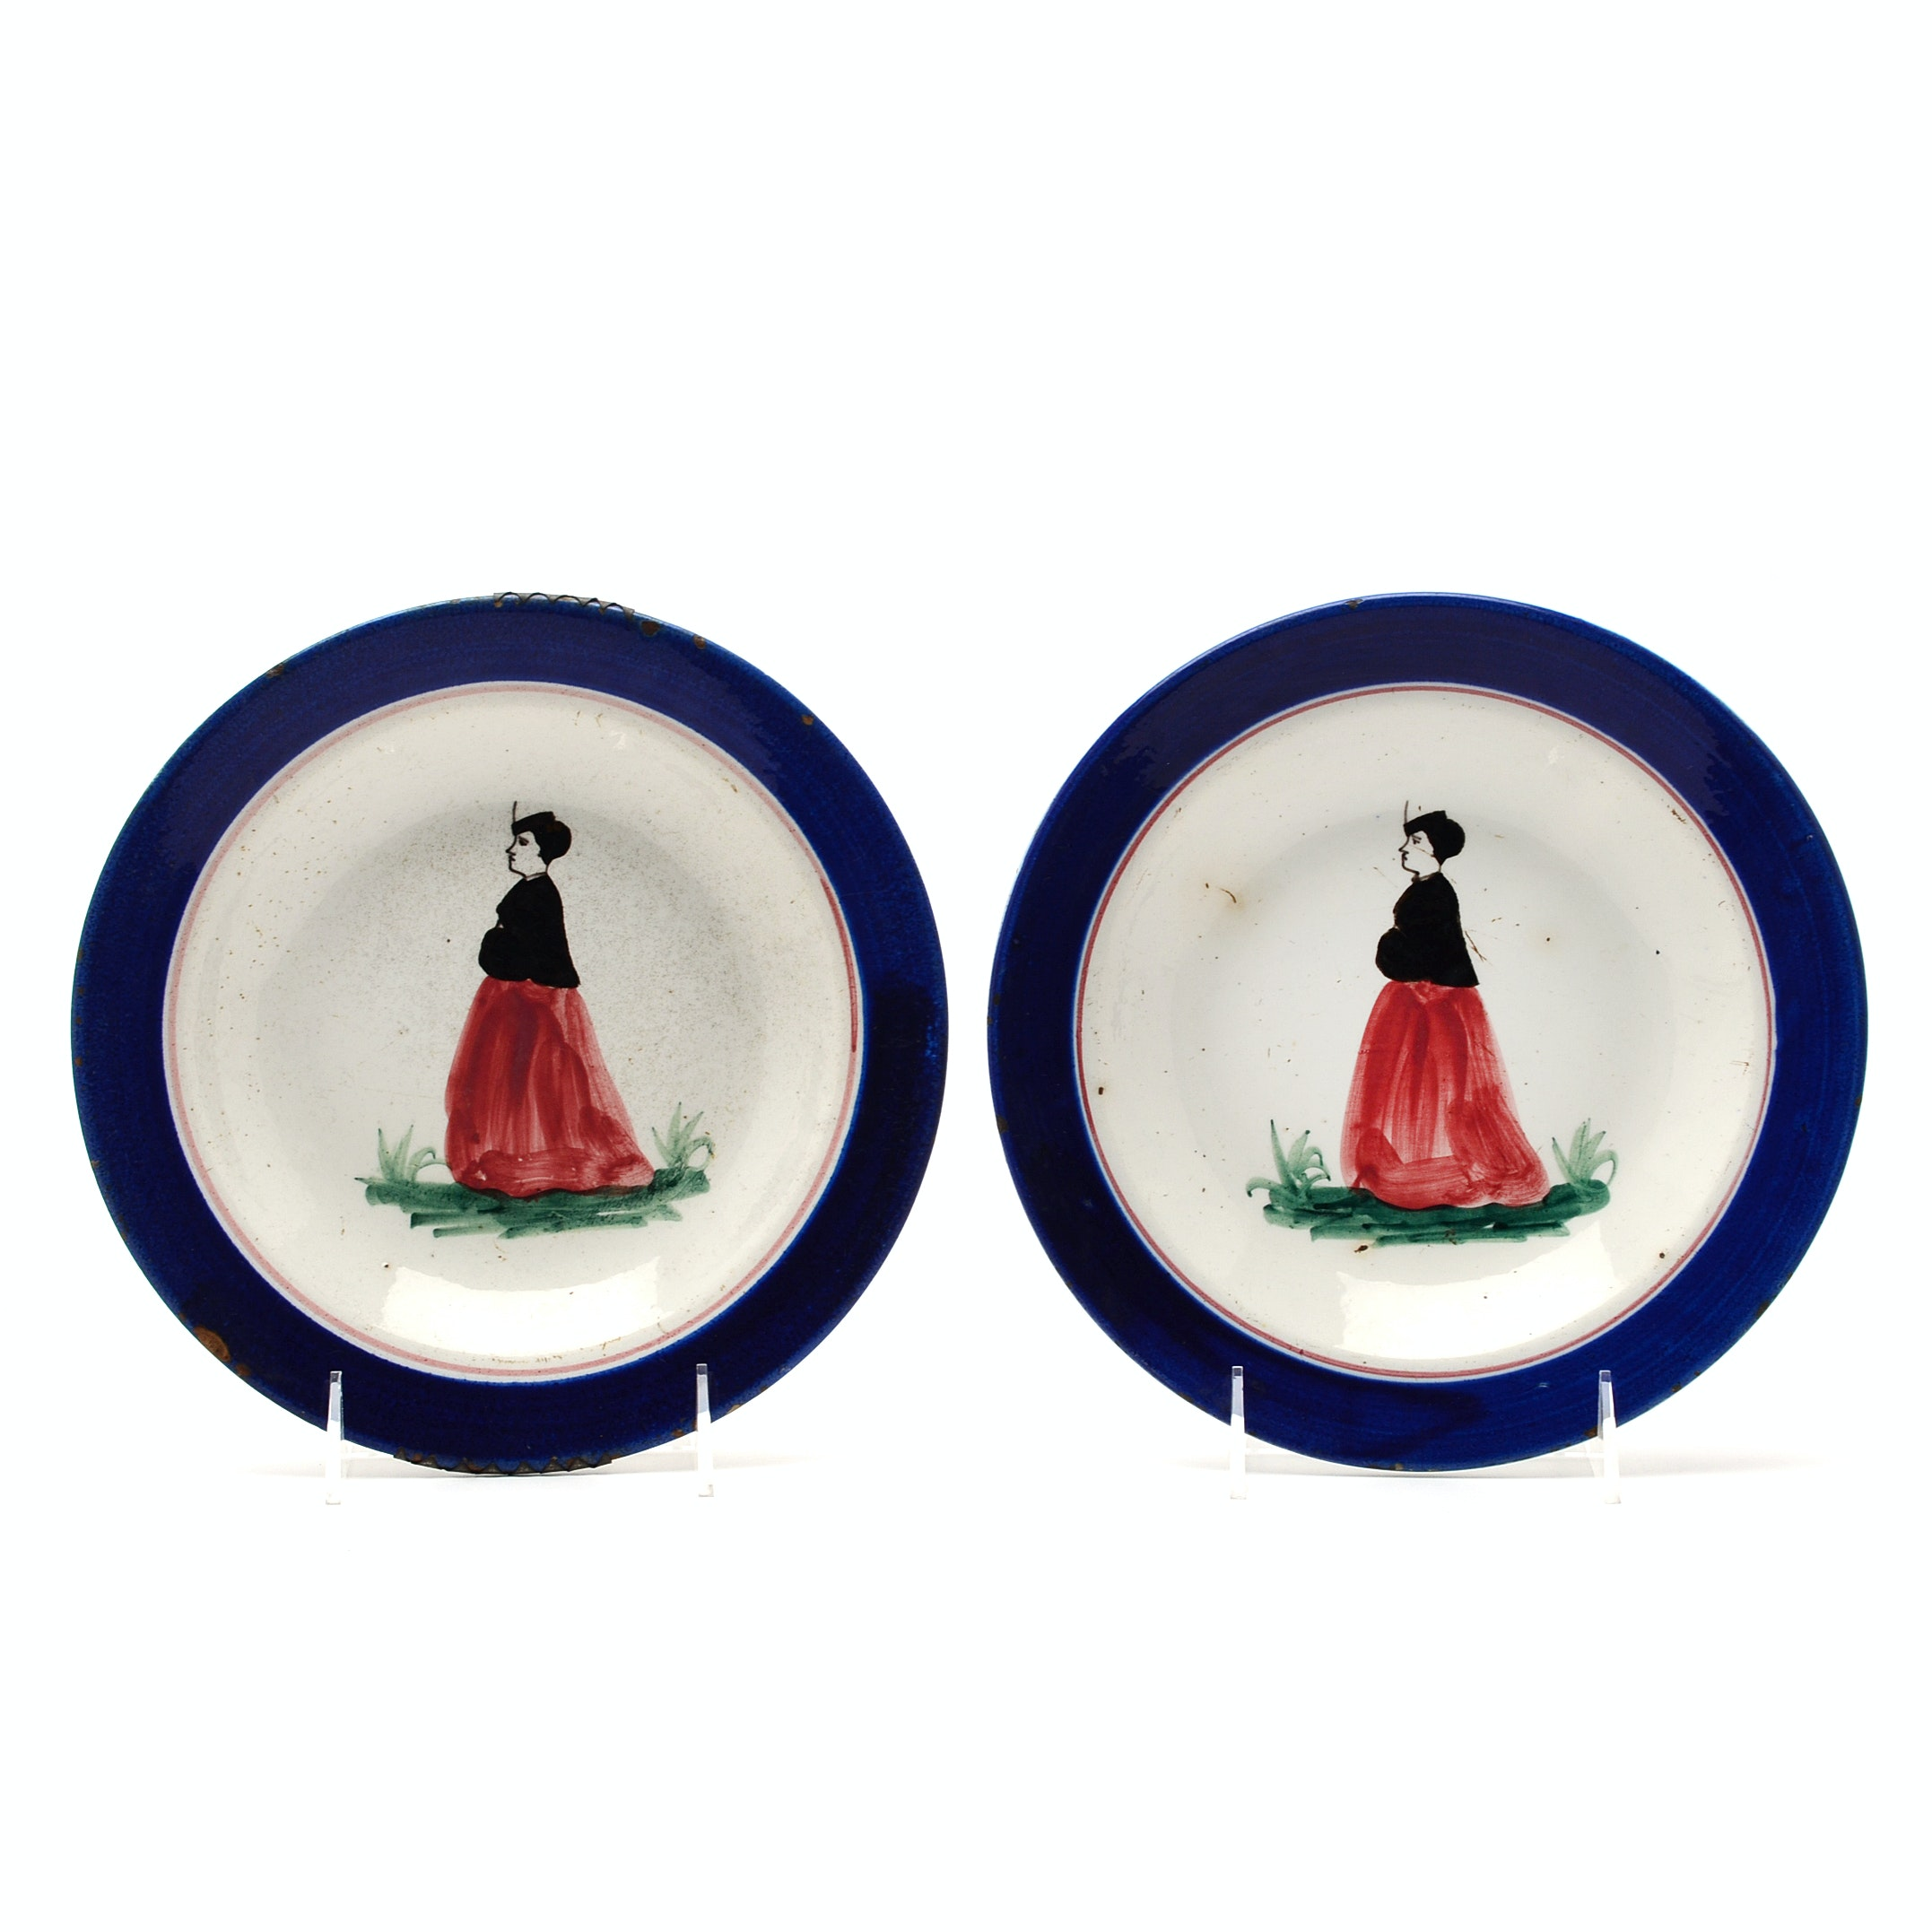 Matching French Hand-Painted Faïence Plates